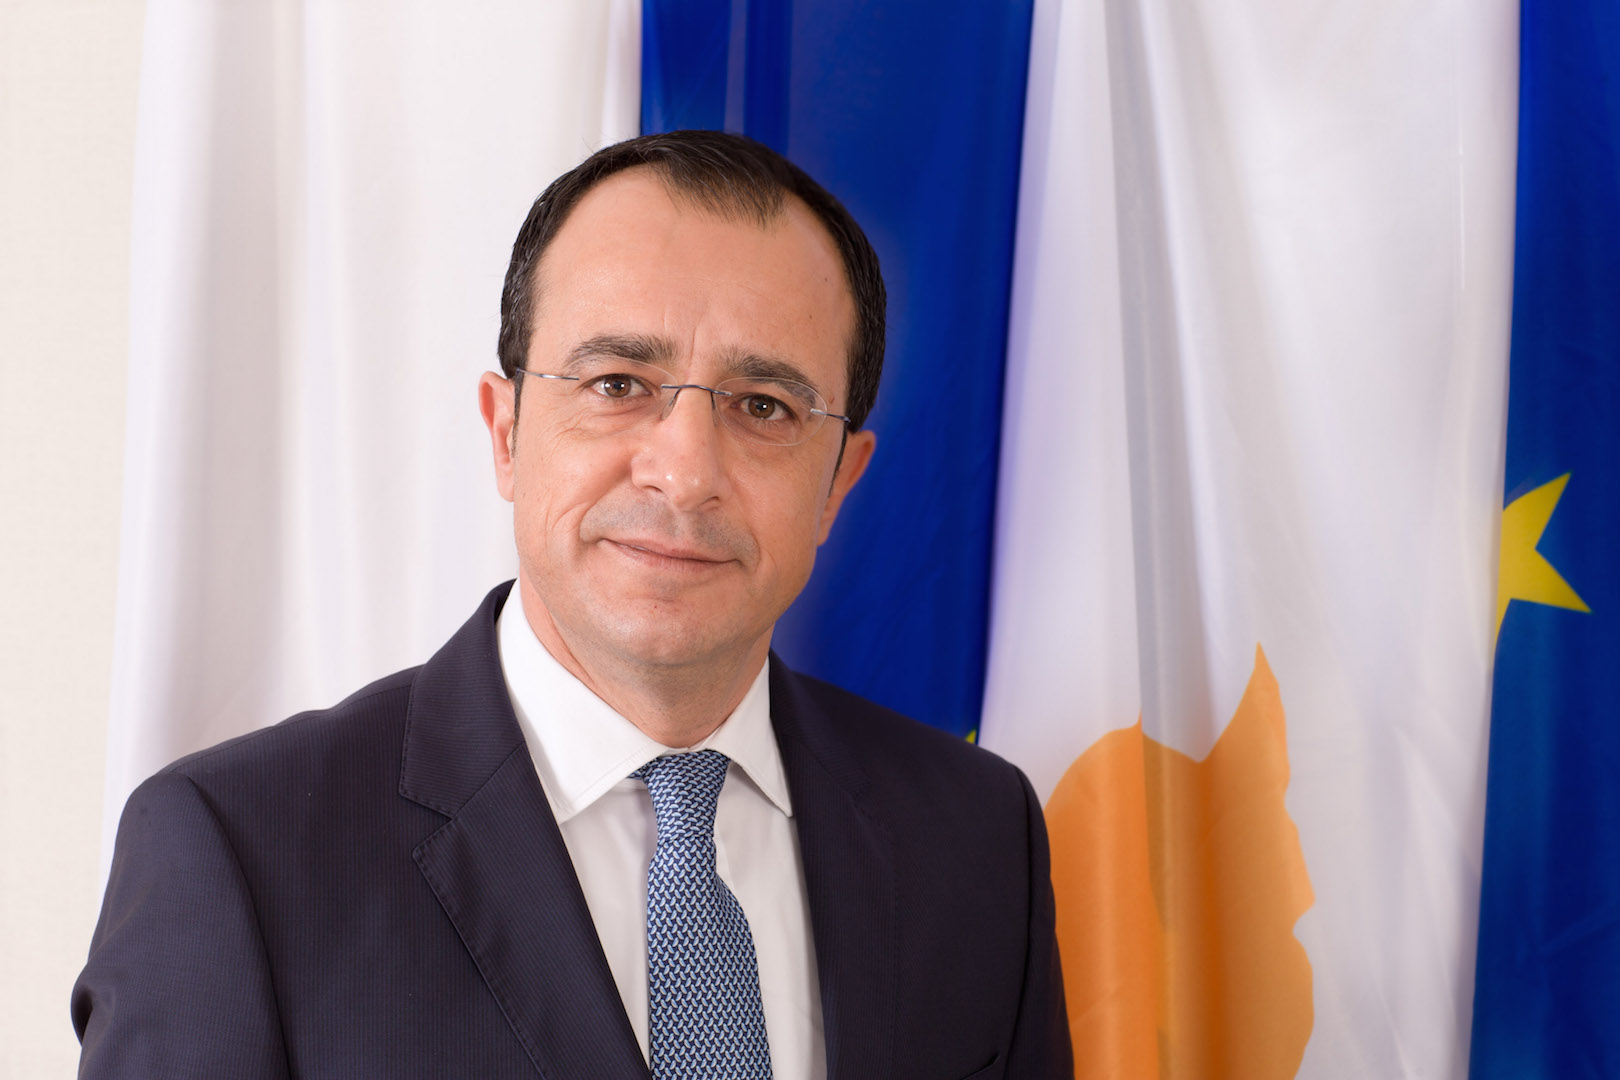 Christodoulides to visit Cairo on Wednesday for the pentamer. In Ankara on Tuesday the Italian Foreign Minister